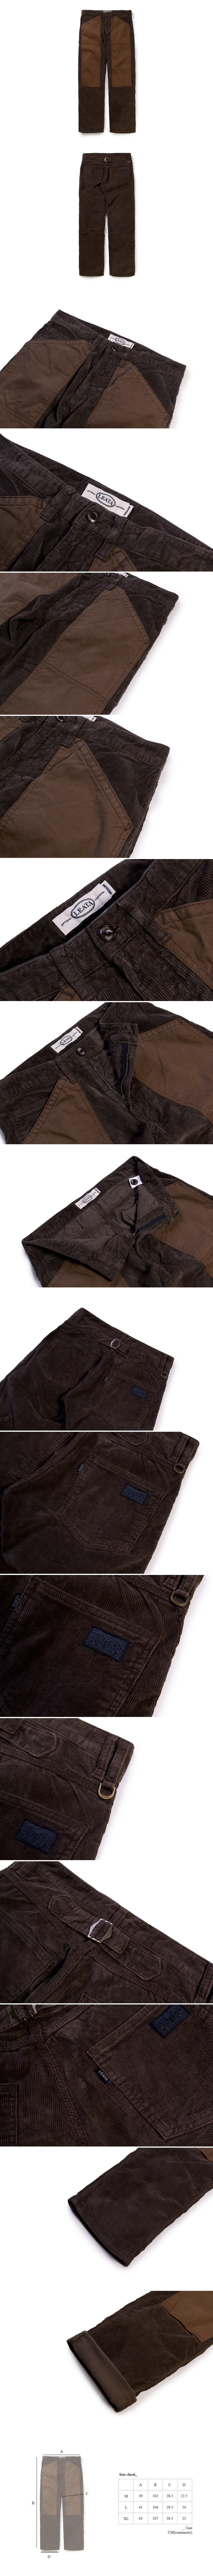 Double knee Corduroy pants brown.jpg